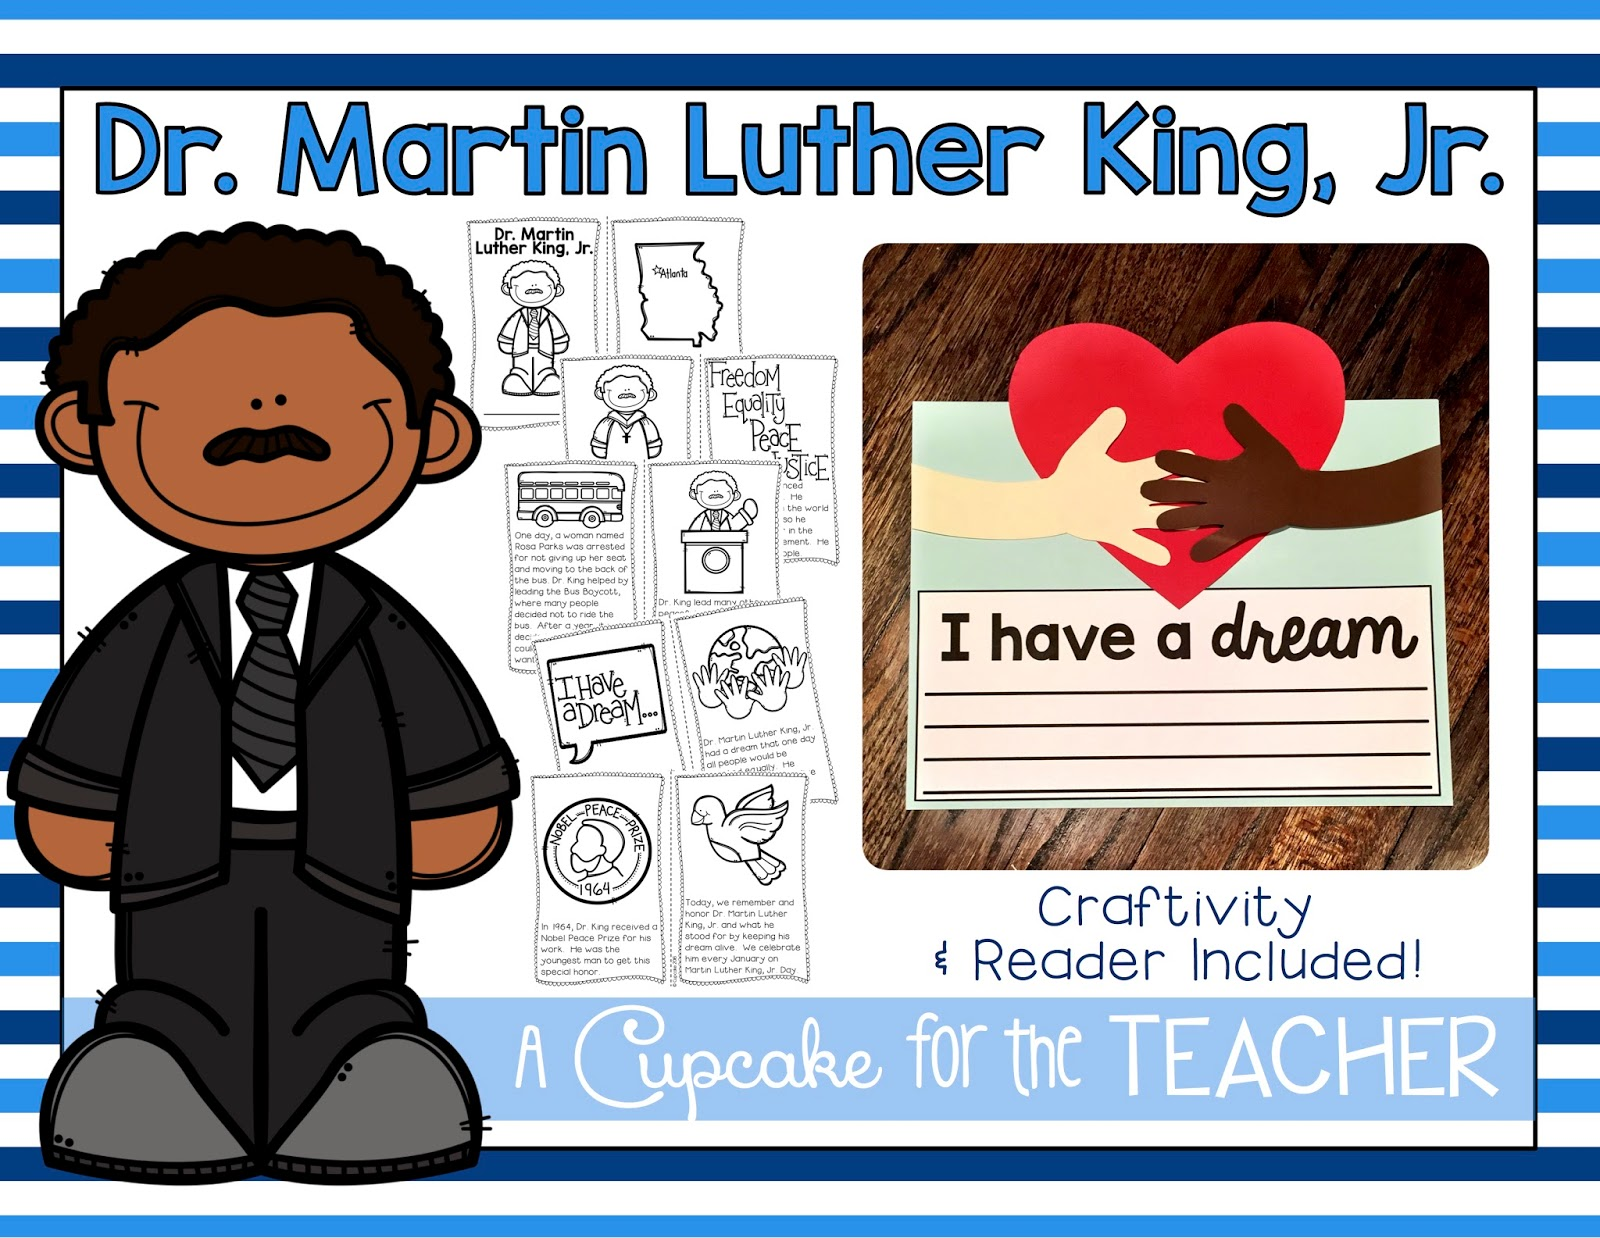 Crafts & Ideas for MLK Day! - A Cupcake for the Teacher